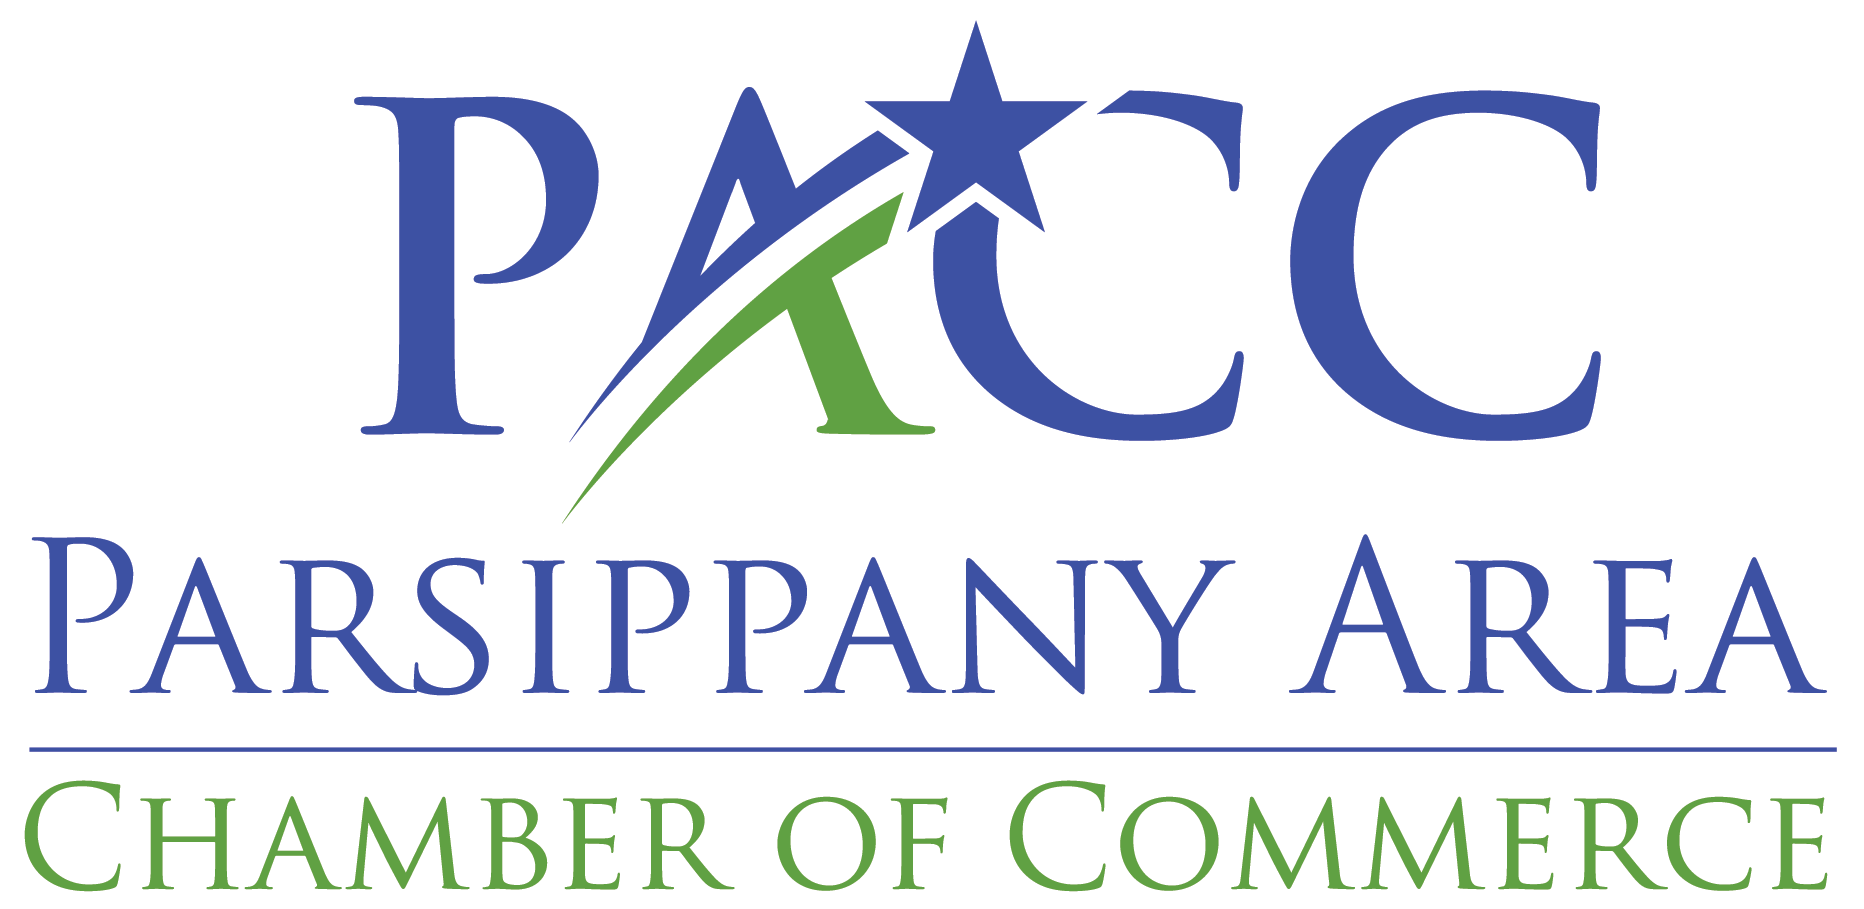 Parsippany Area Chamber of Commerce is a service organization for businesses, merchants, residents, and volunteers that provides education, information, and networking opportunities to the Parsippany